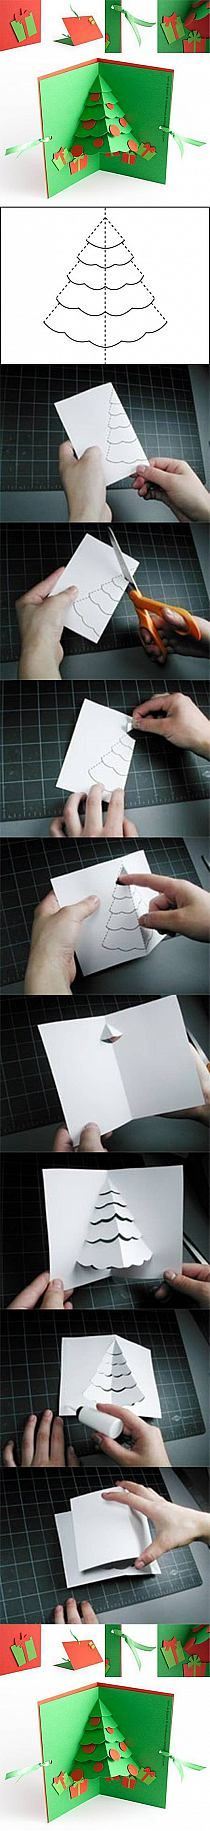 DIY Christmas Tree Pop Up Card DIY Projects | UsefulDIY…